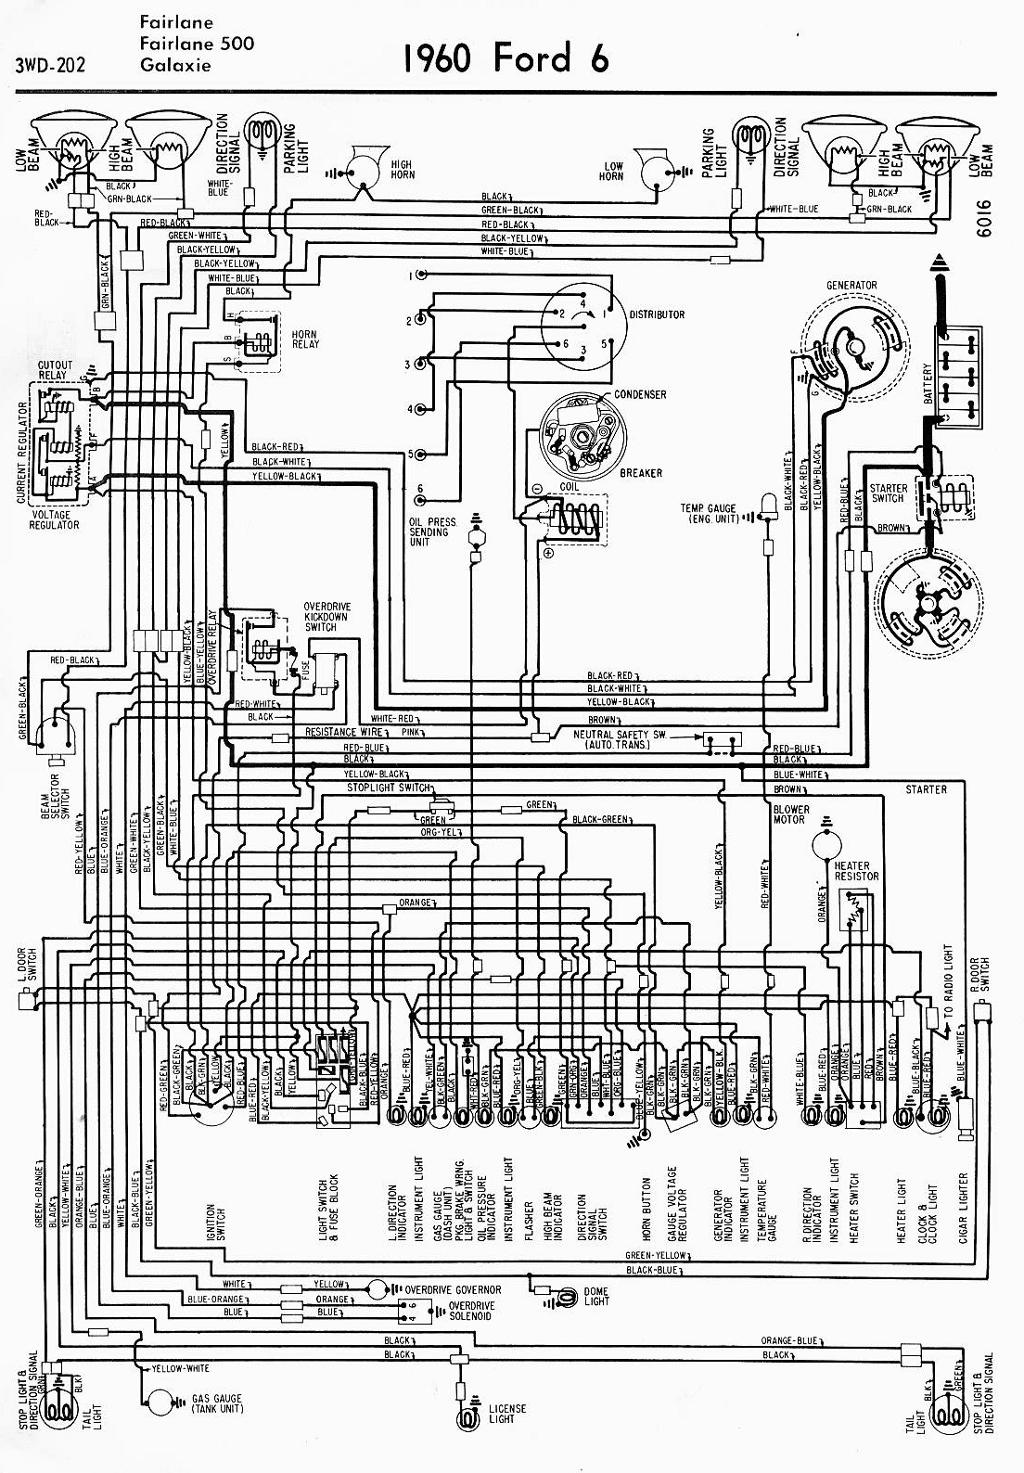 67 ford solenoid wiring diagram wiring diagram for 1967 ford fairlane wiring diagrams show  wiring diagram for 1967 ford fairlane